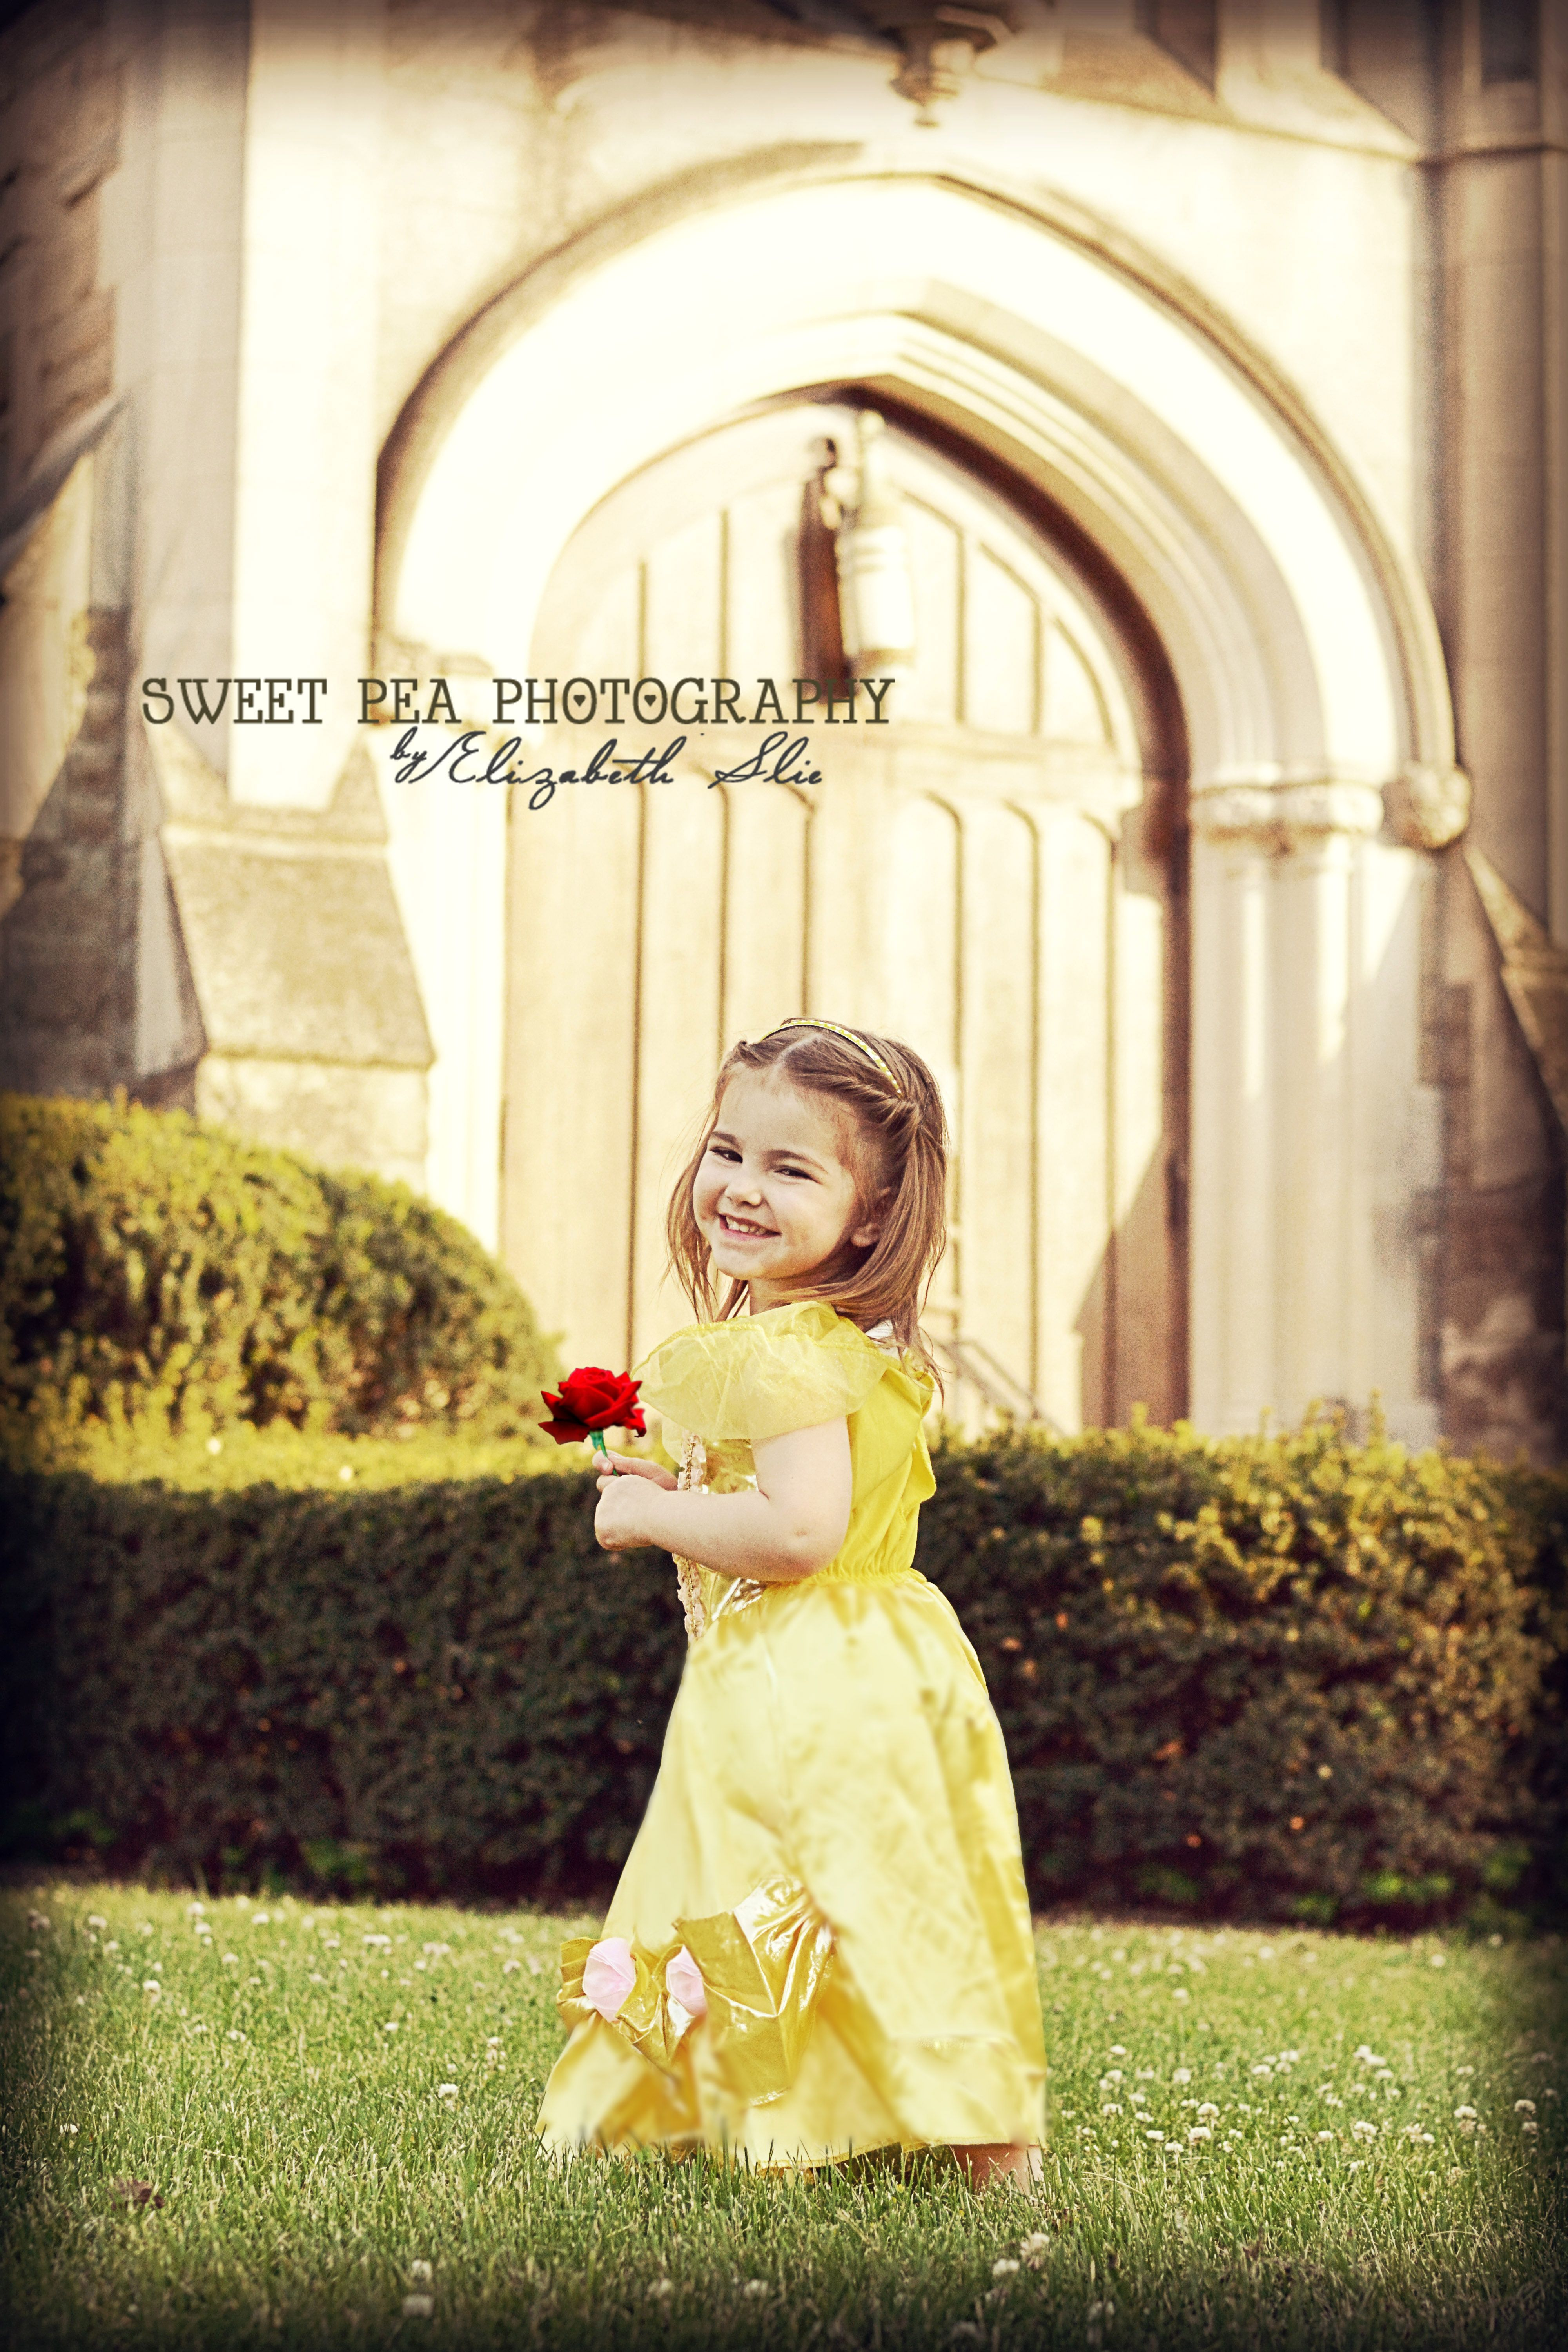 beauty and the beast photo shoot 3 year old girl photo ideas